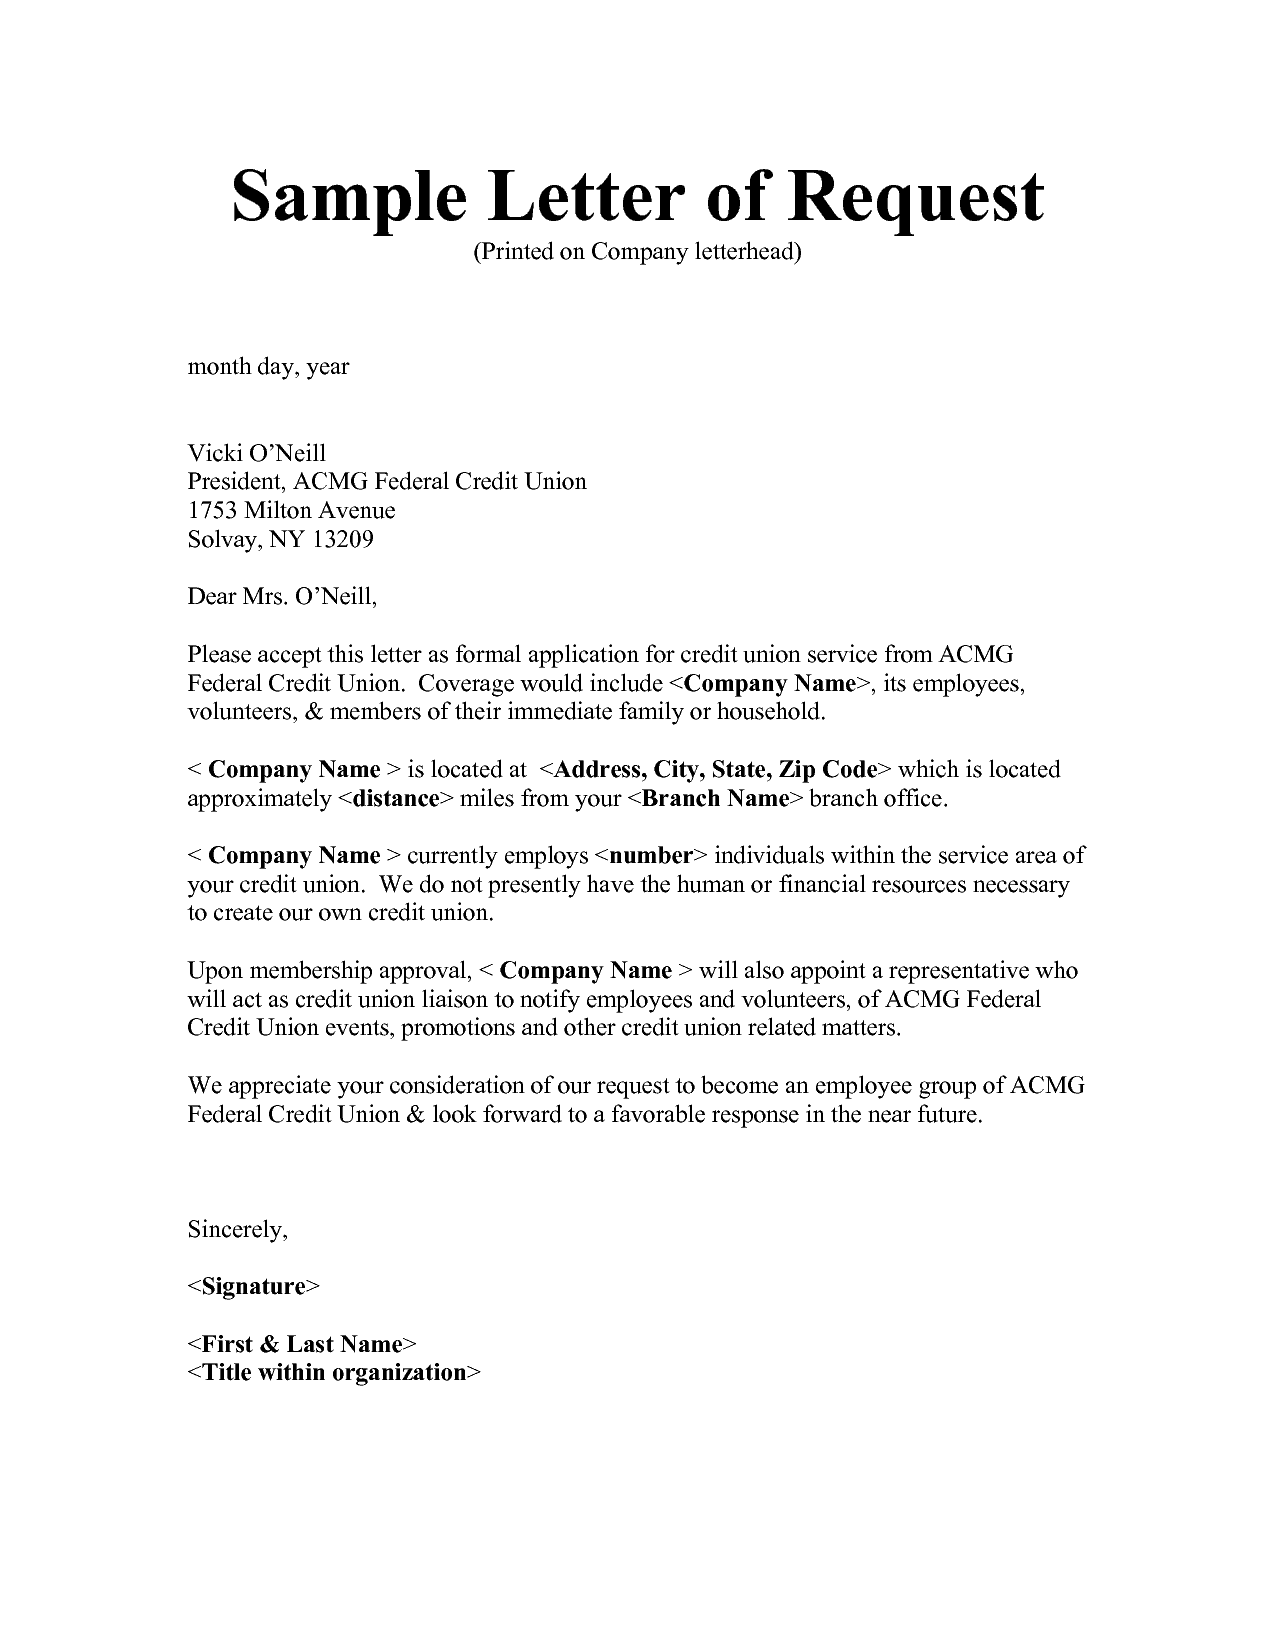 Cover letter for project proposal example of a project manager cover letter for project proposal example of a project manager cover letter consider this if a job overseeing and managing a company project interests thecheapjerseys Images